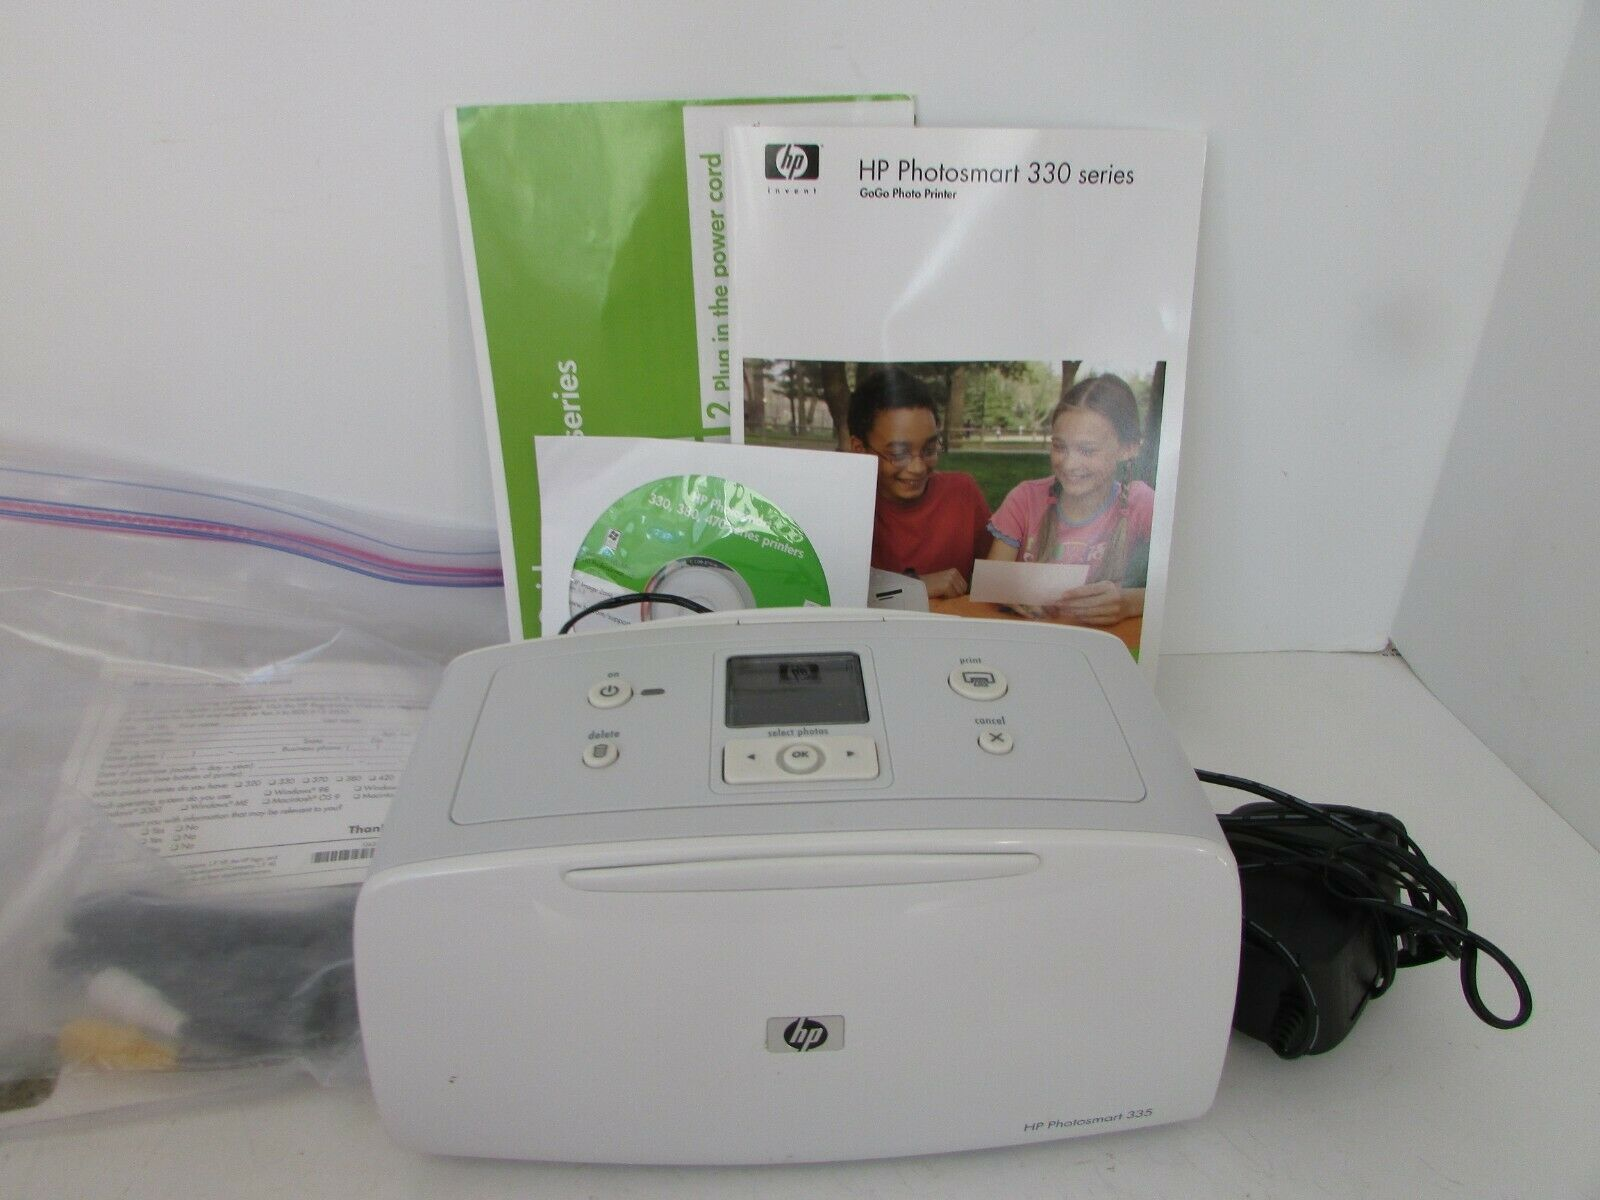 Primary image for HP PHOTOSMART 330 SERIES GOGO PHOTO PRINTER MODEL Q6377L MINT